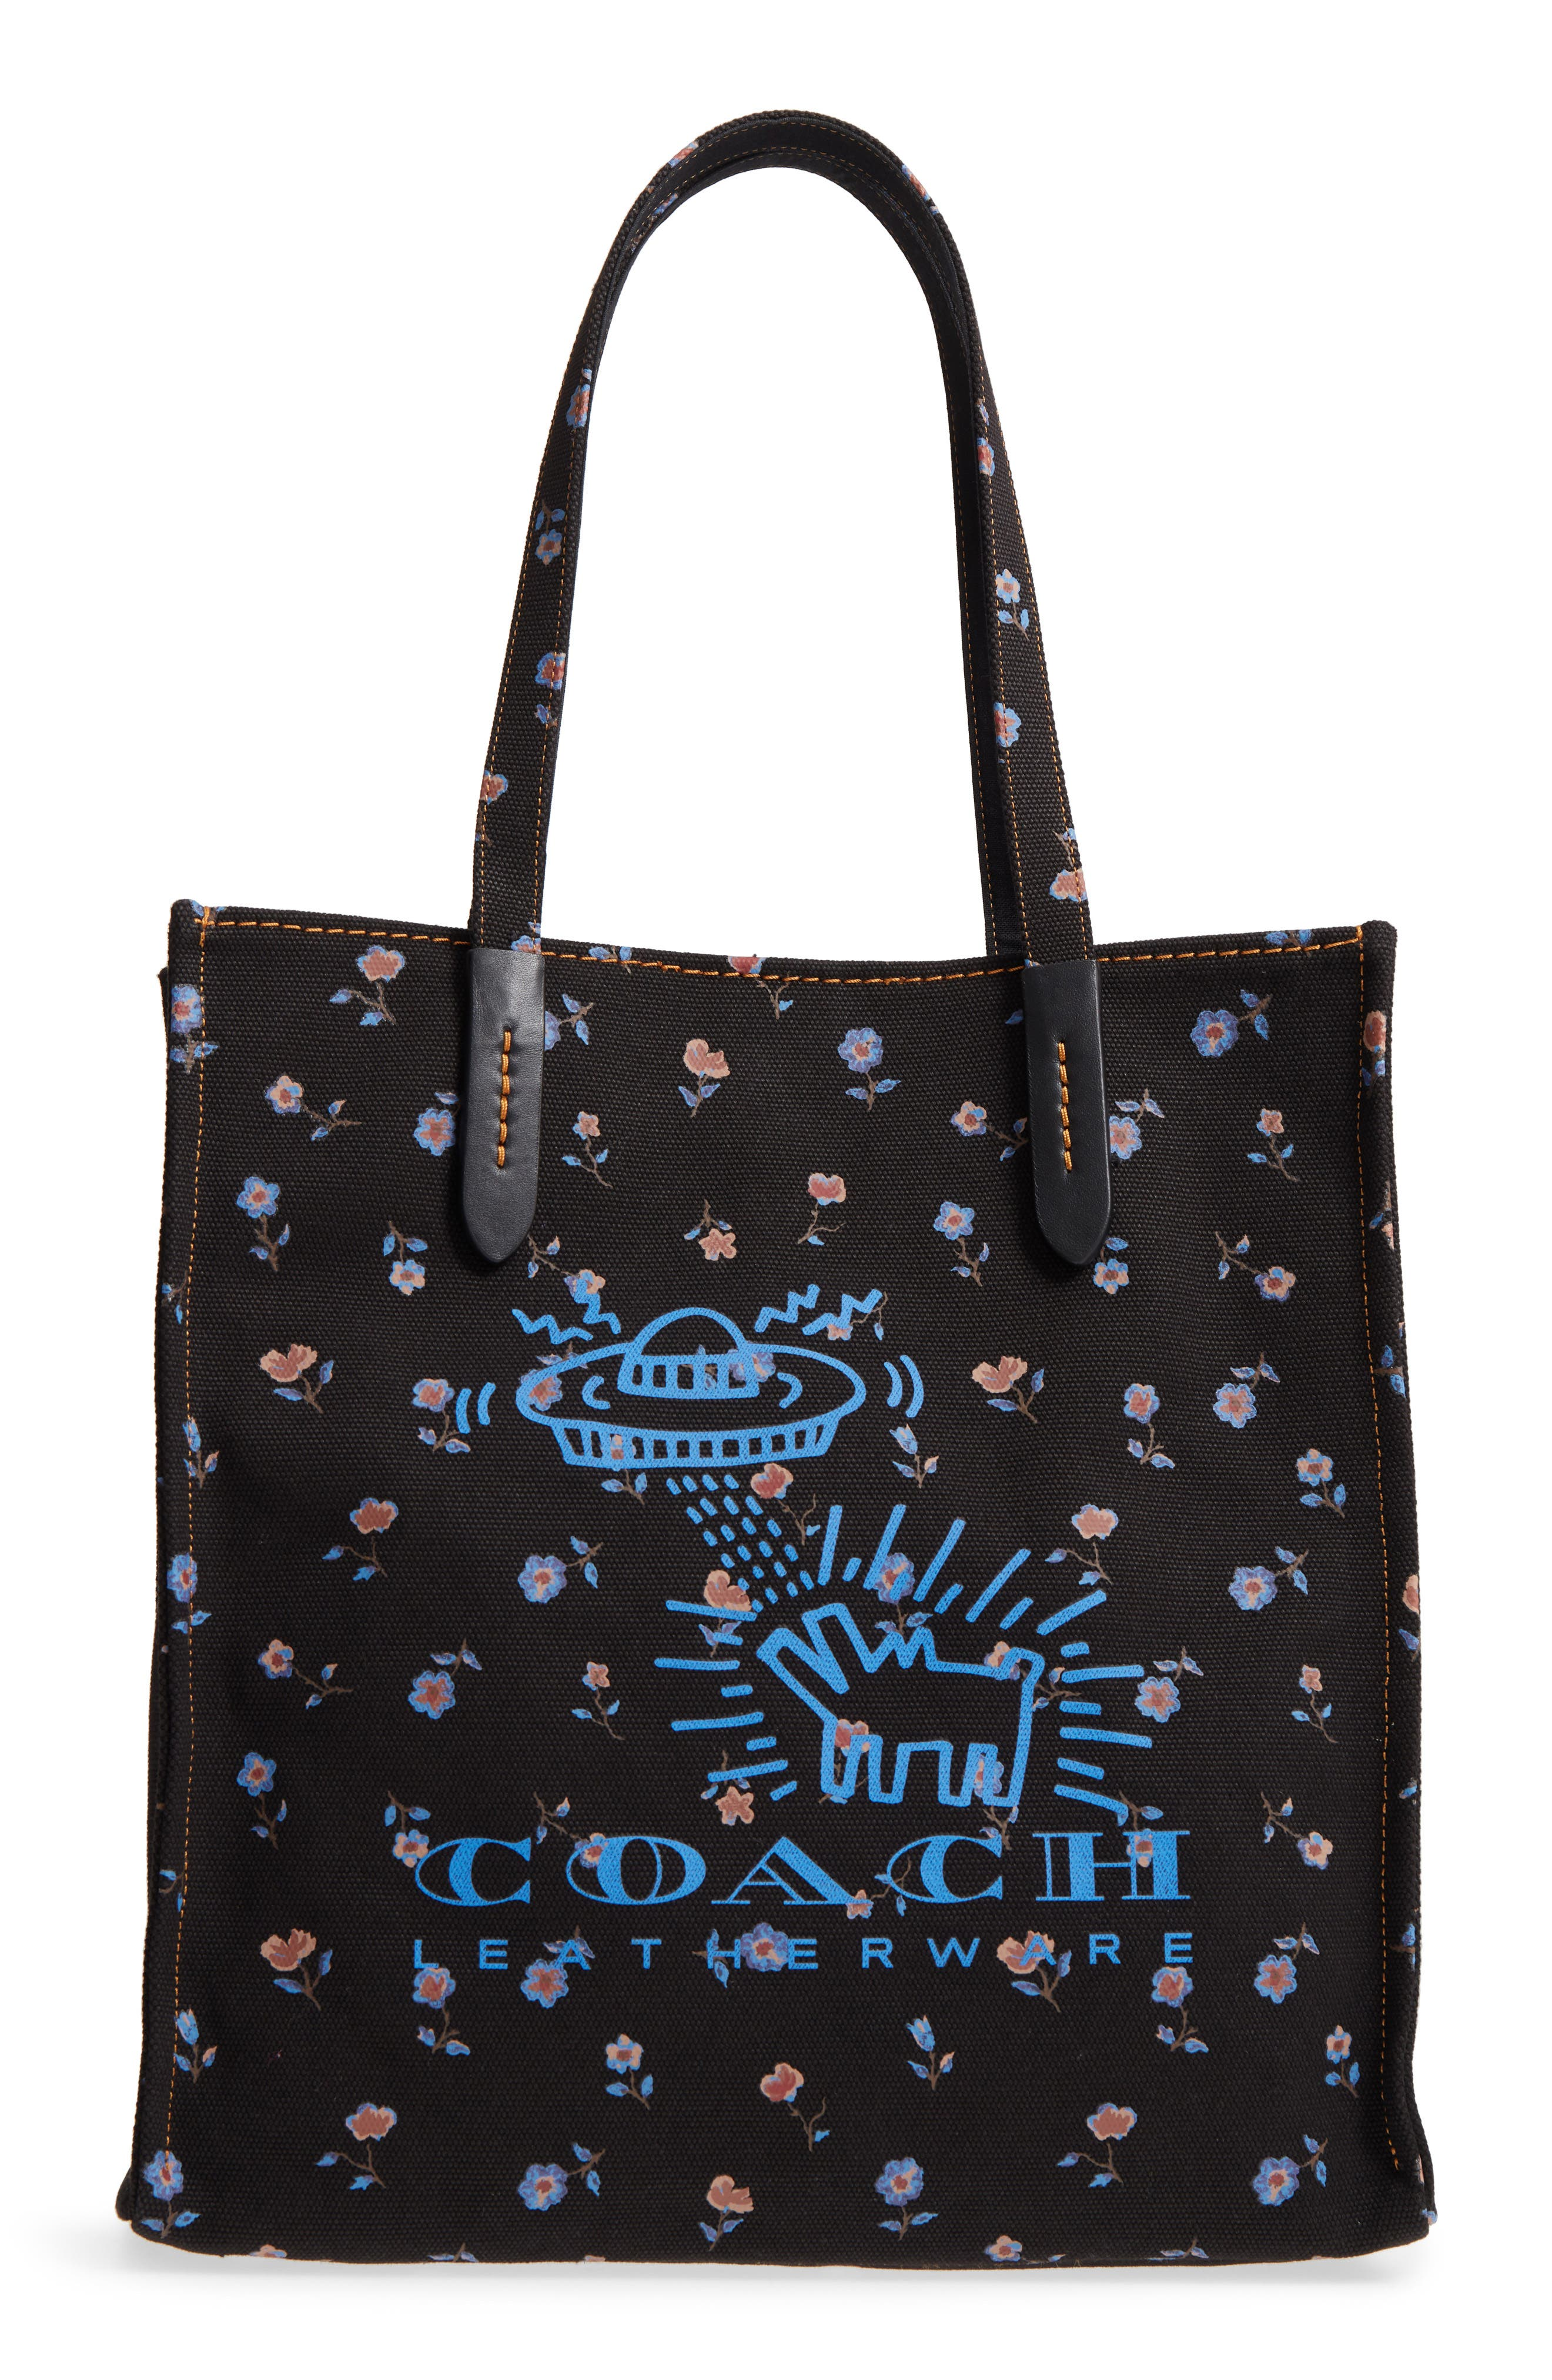 COACH x Keith Haring UFO Dog Canvas Tote